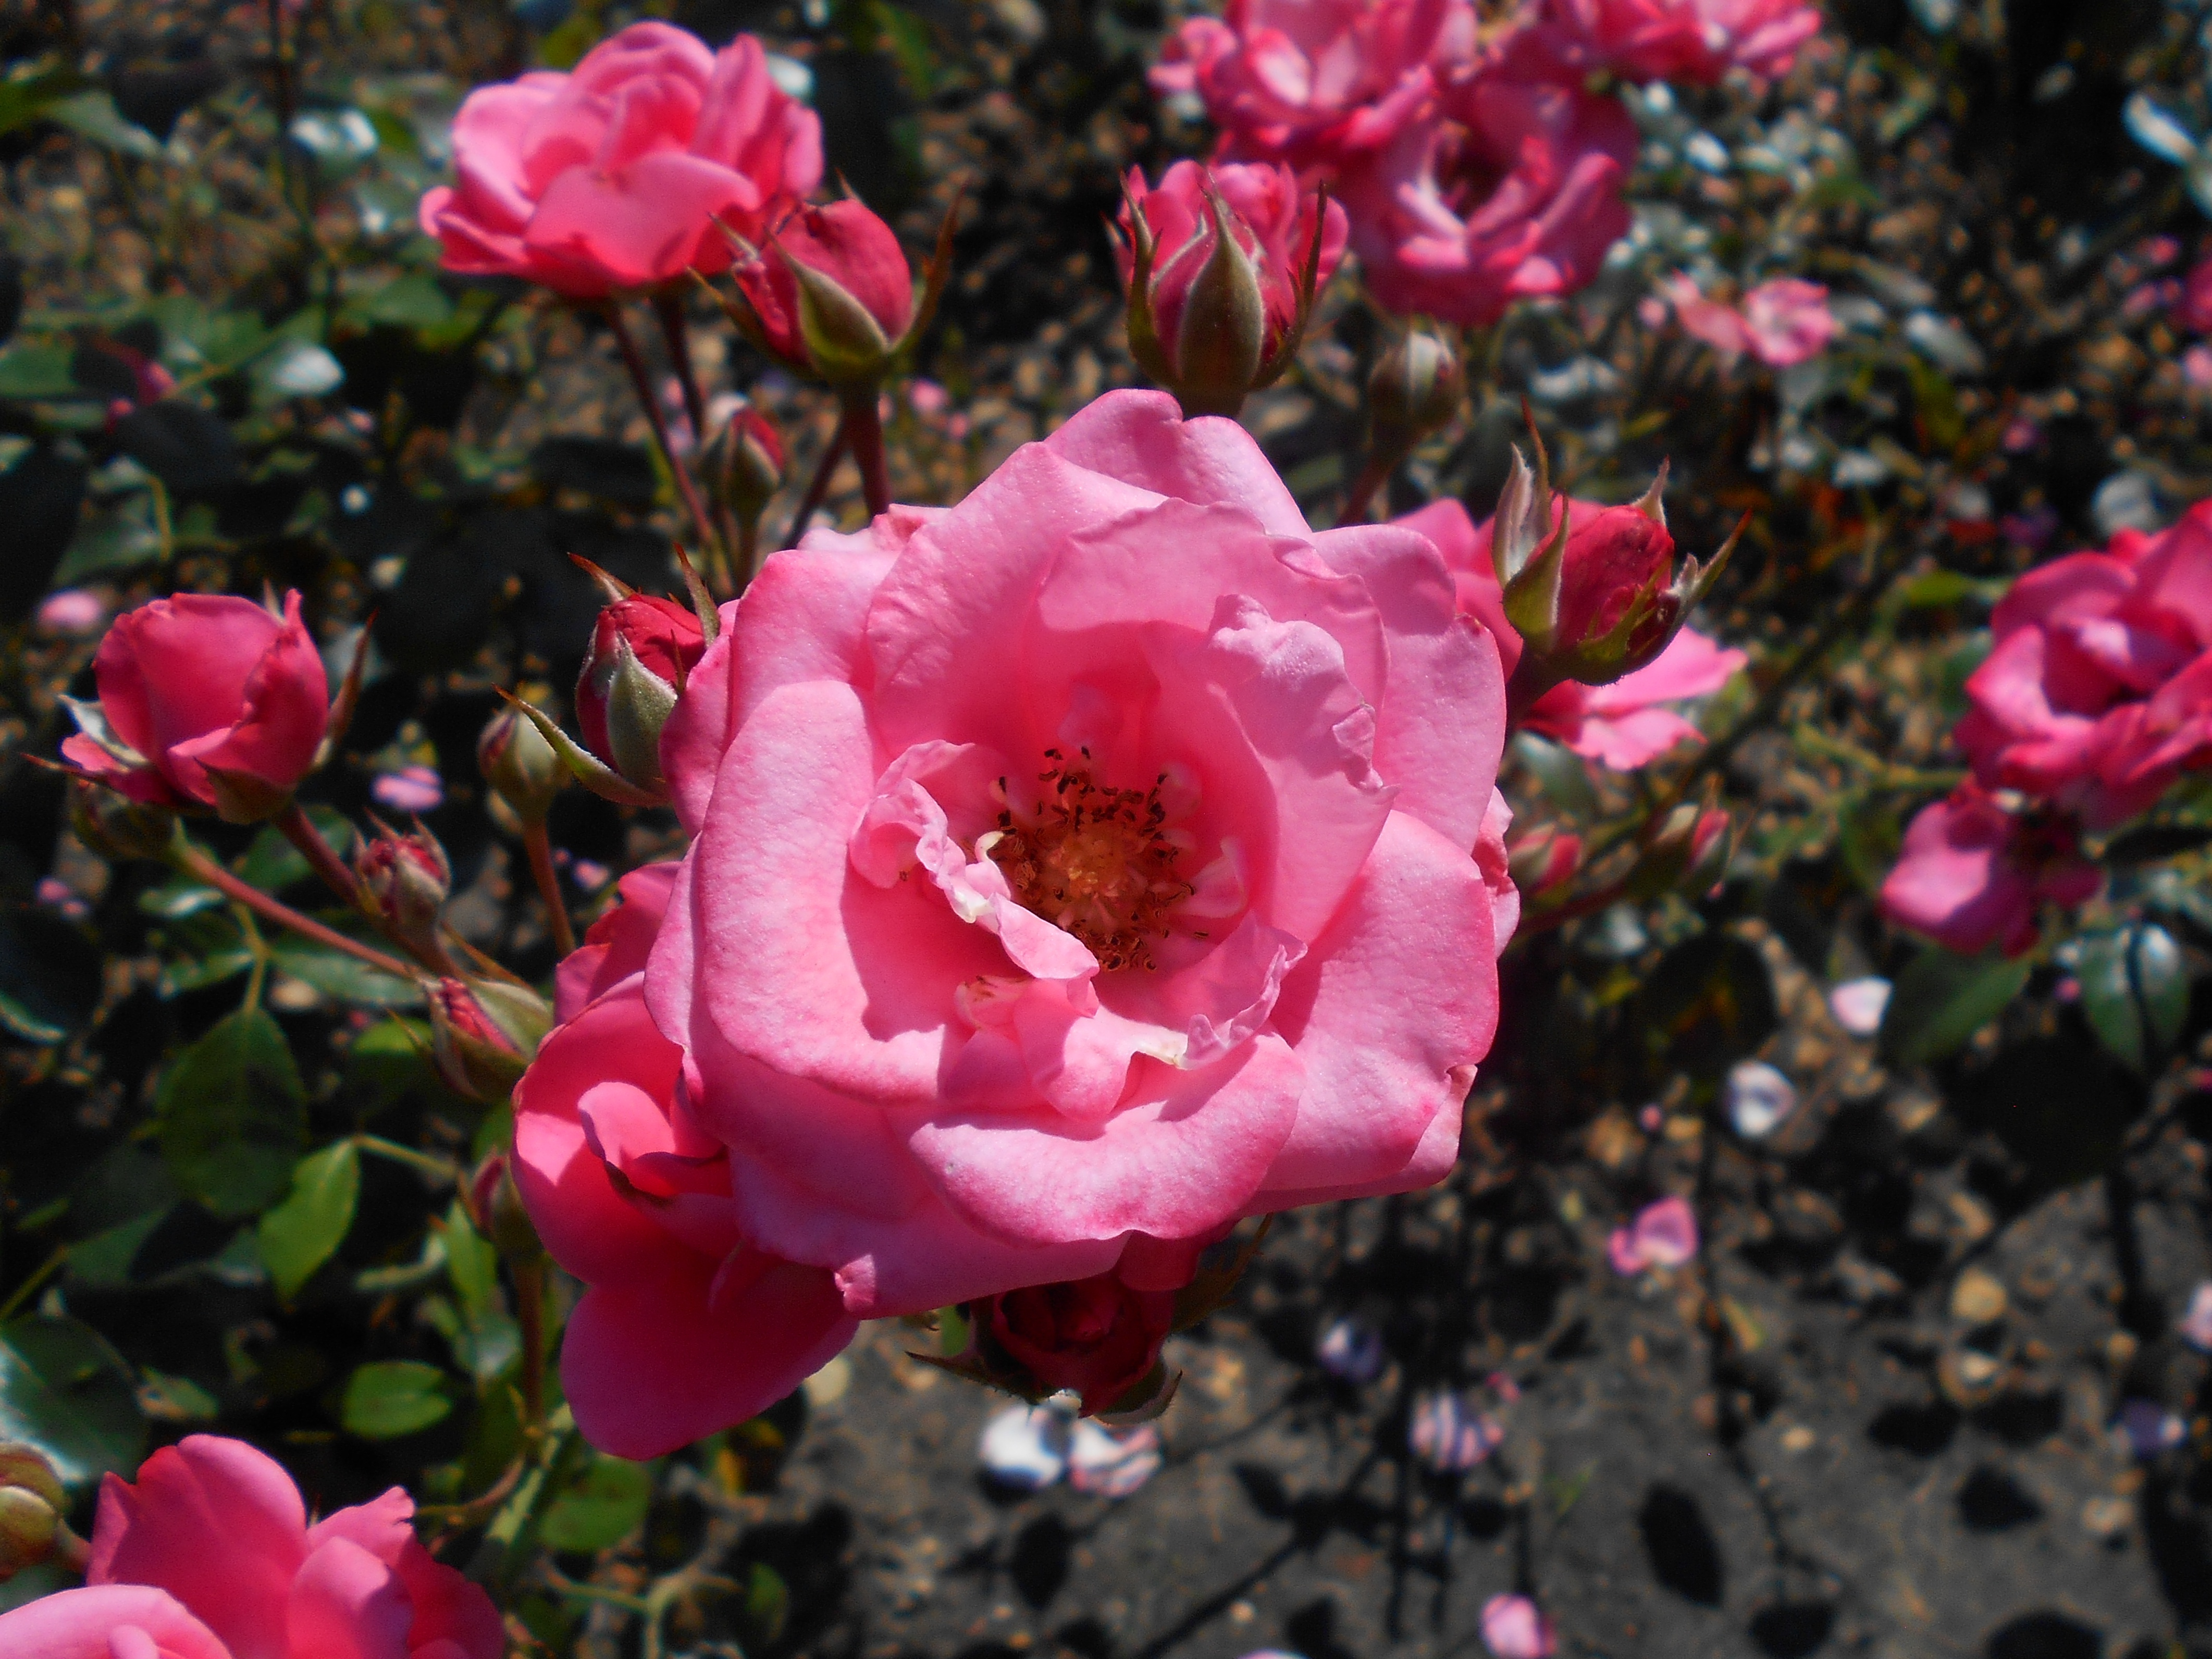 Bella Rosa File Rosa Bella Rosa 2018 07 16 6406 Jpg Wikimedia Commons